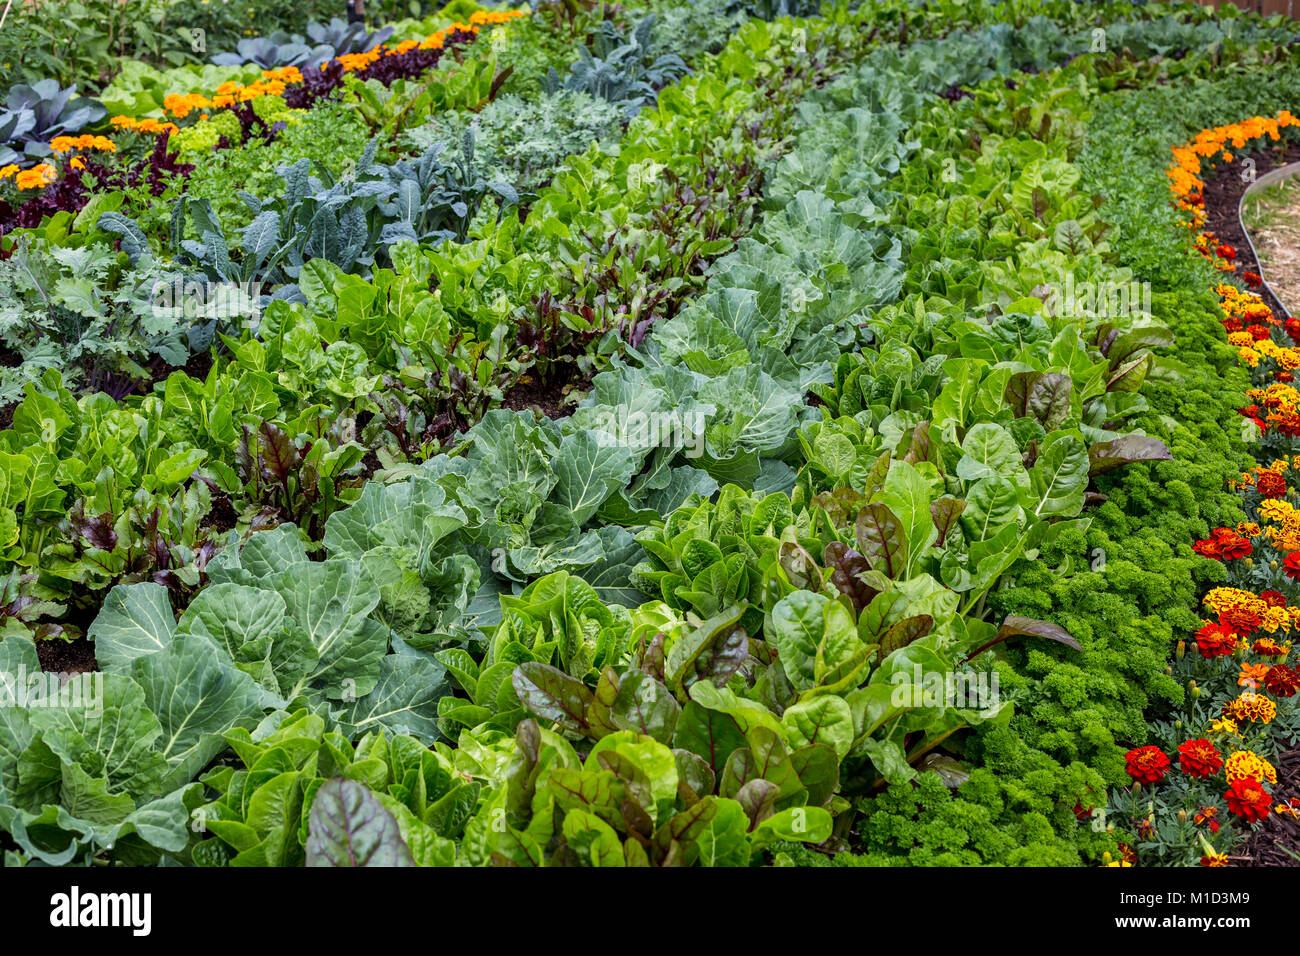 Etonnant Large Vegetable Garden Bed With Flowers For Companion Planting   Stock Image